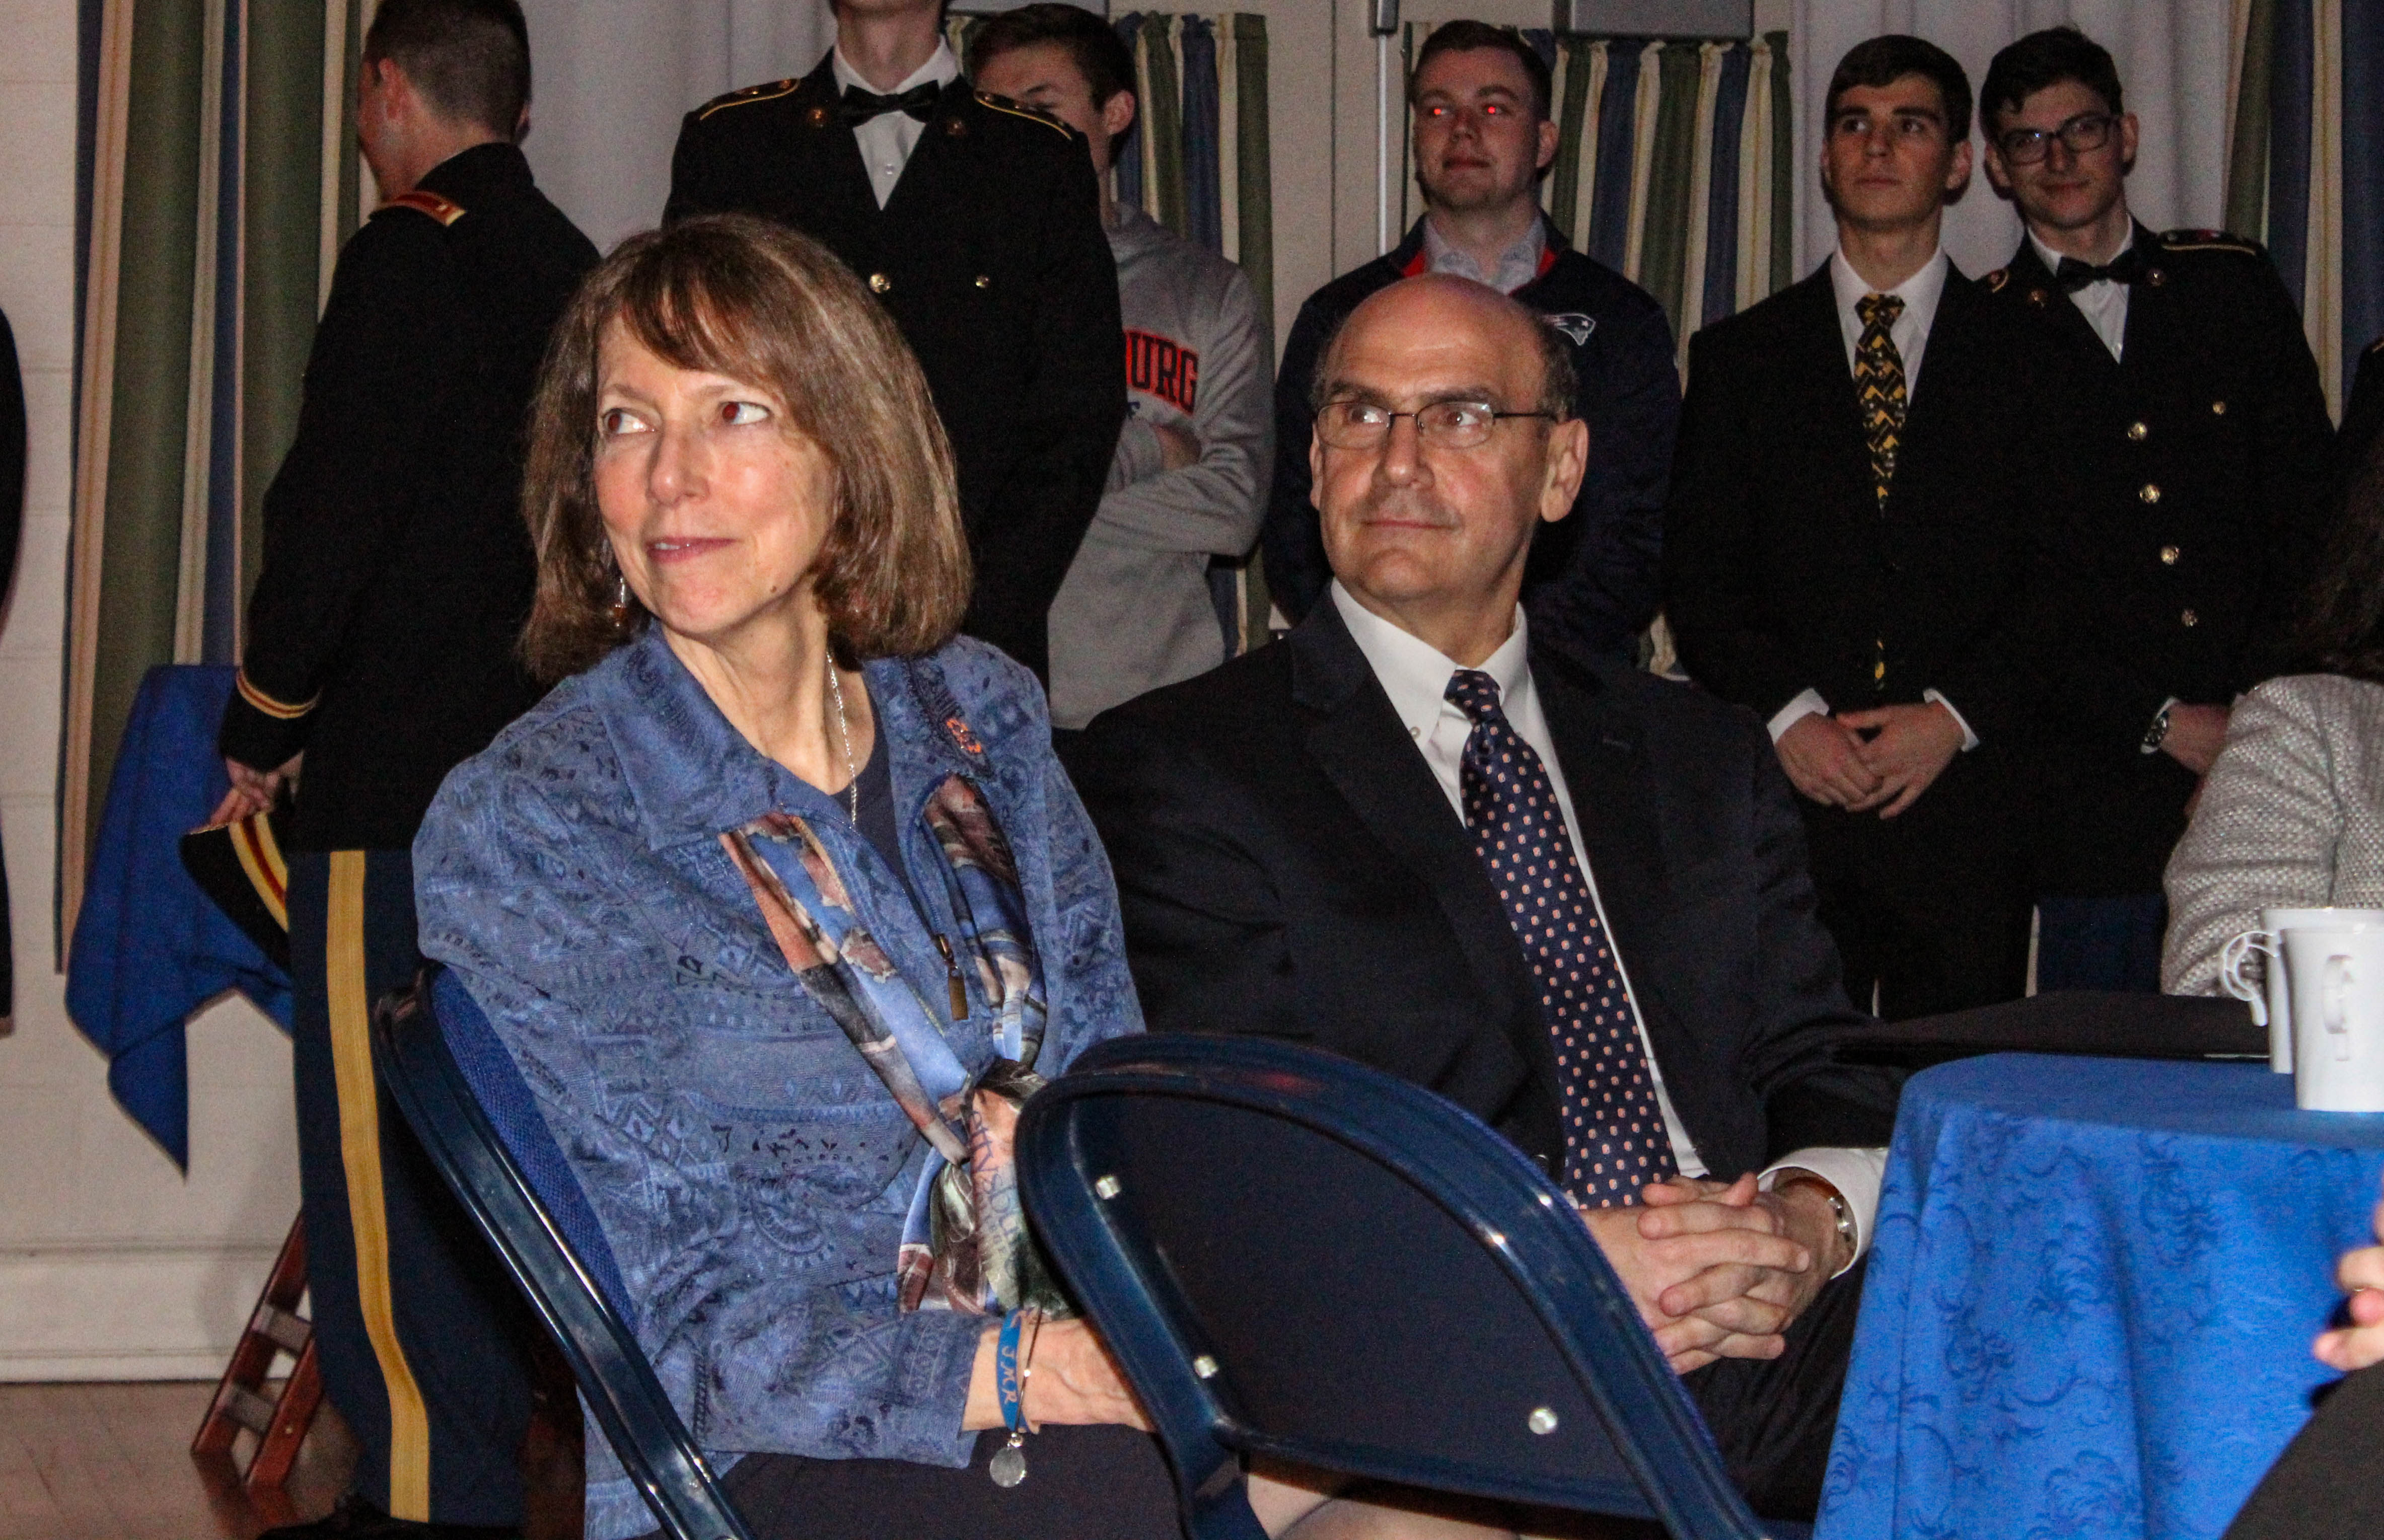 Janet Morgan Riggs and Robert Iuliano at the student welcome reception (Photo Sam Hann/The Gettysburgian)